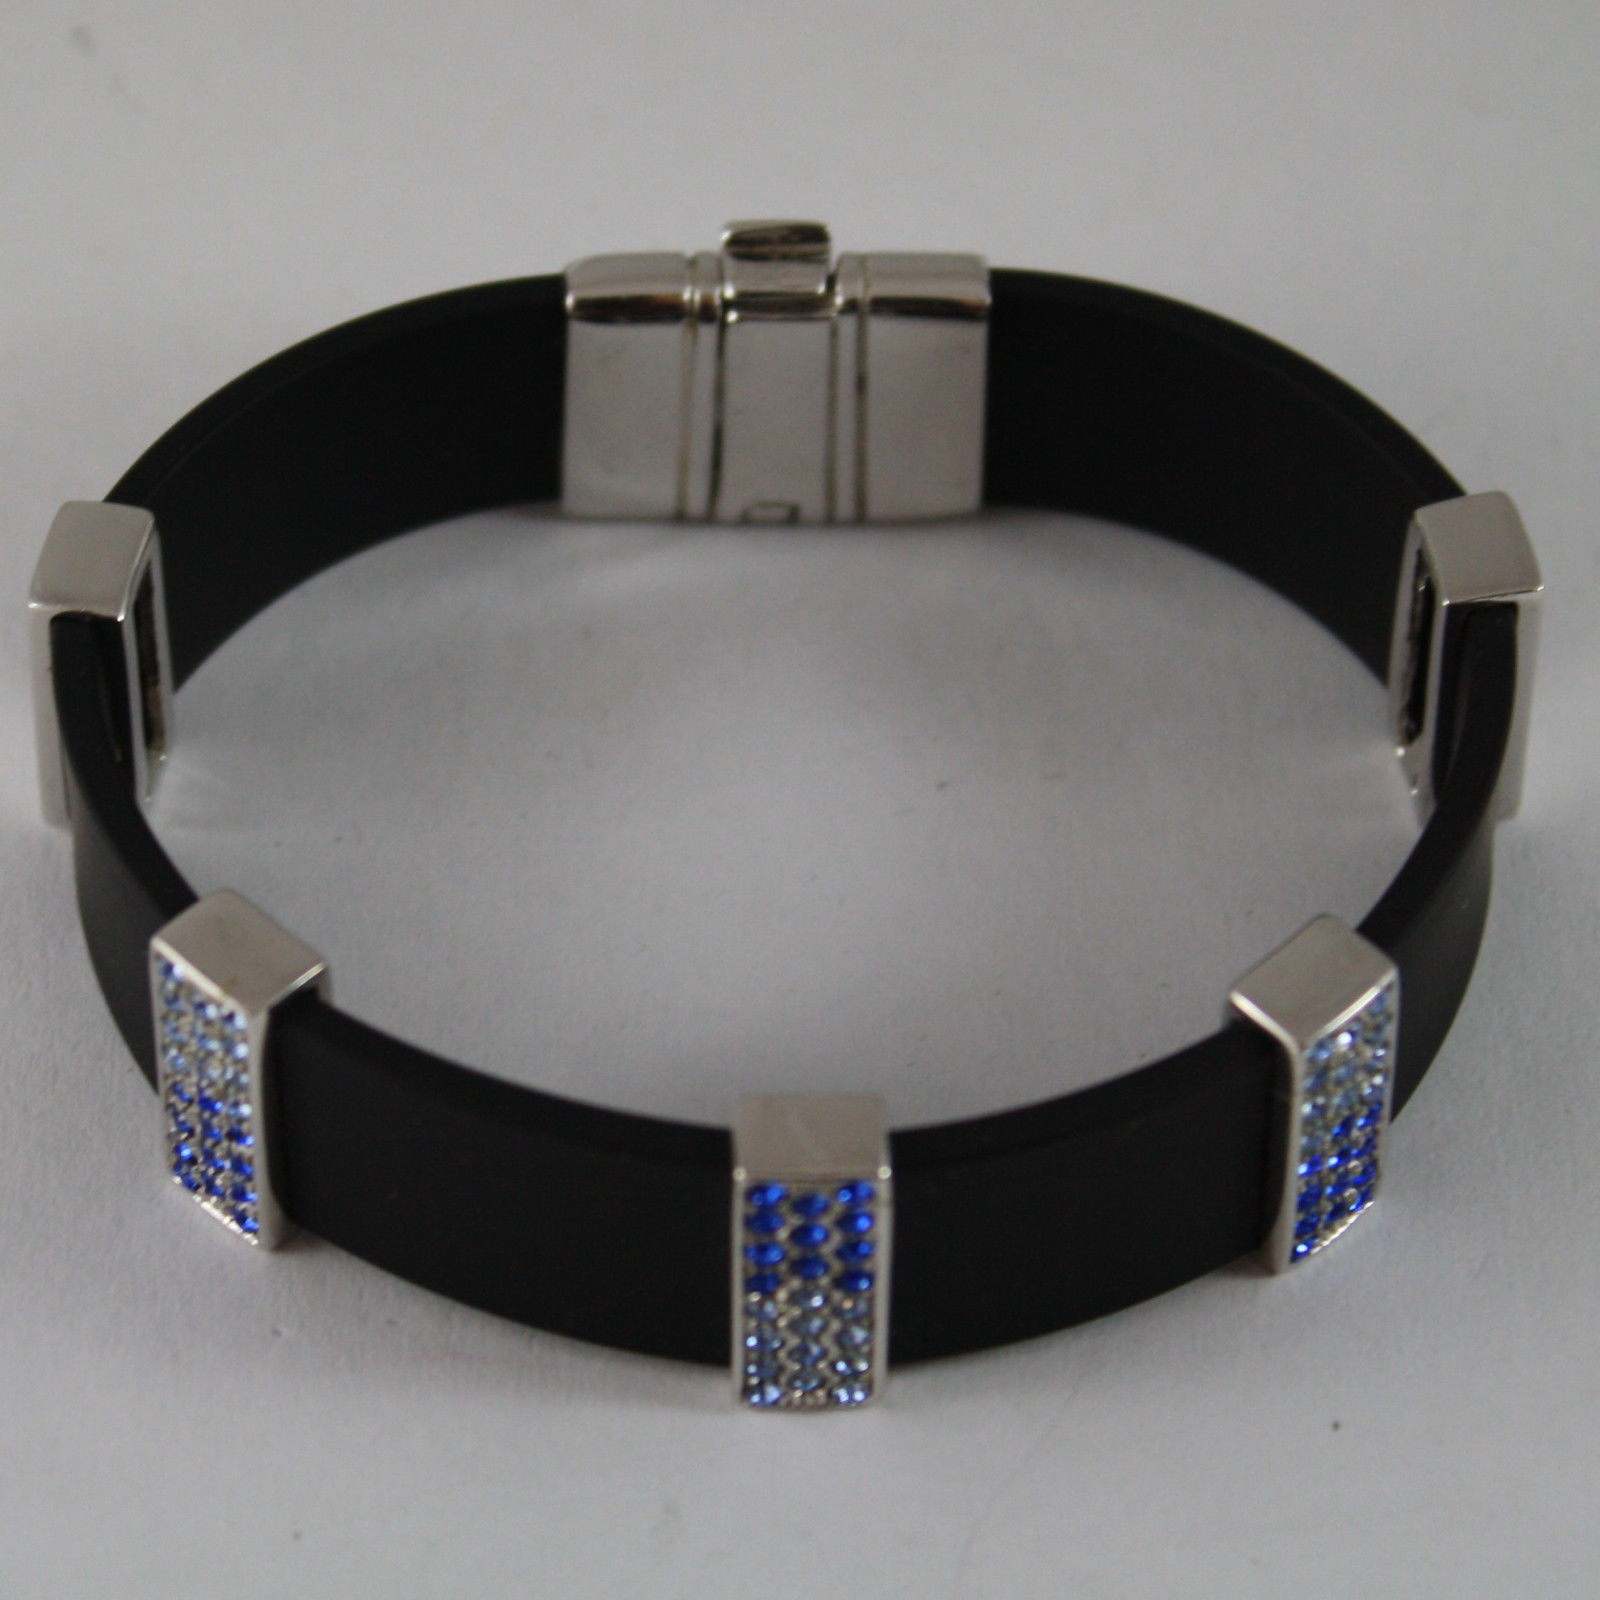 .925 RHODIUM SILVER BRACELET WITH RUBBER AND RECTANGLES WITH BLUE CRYSTALS